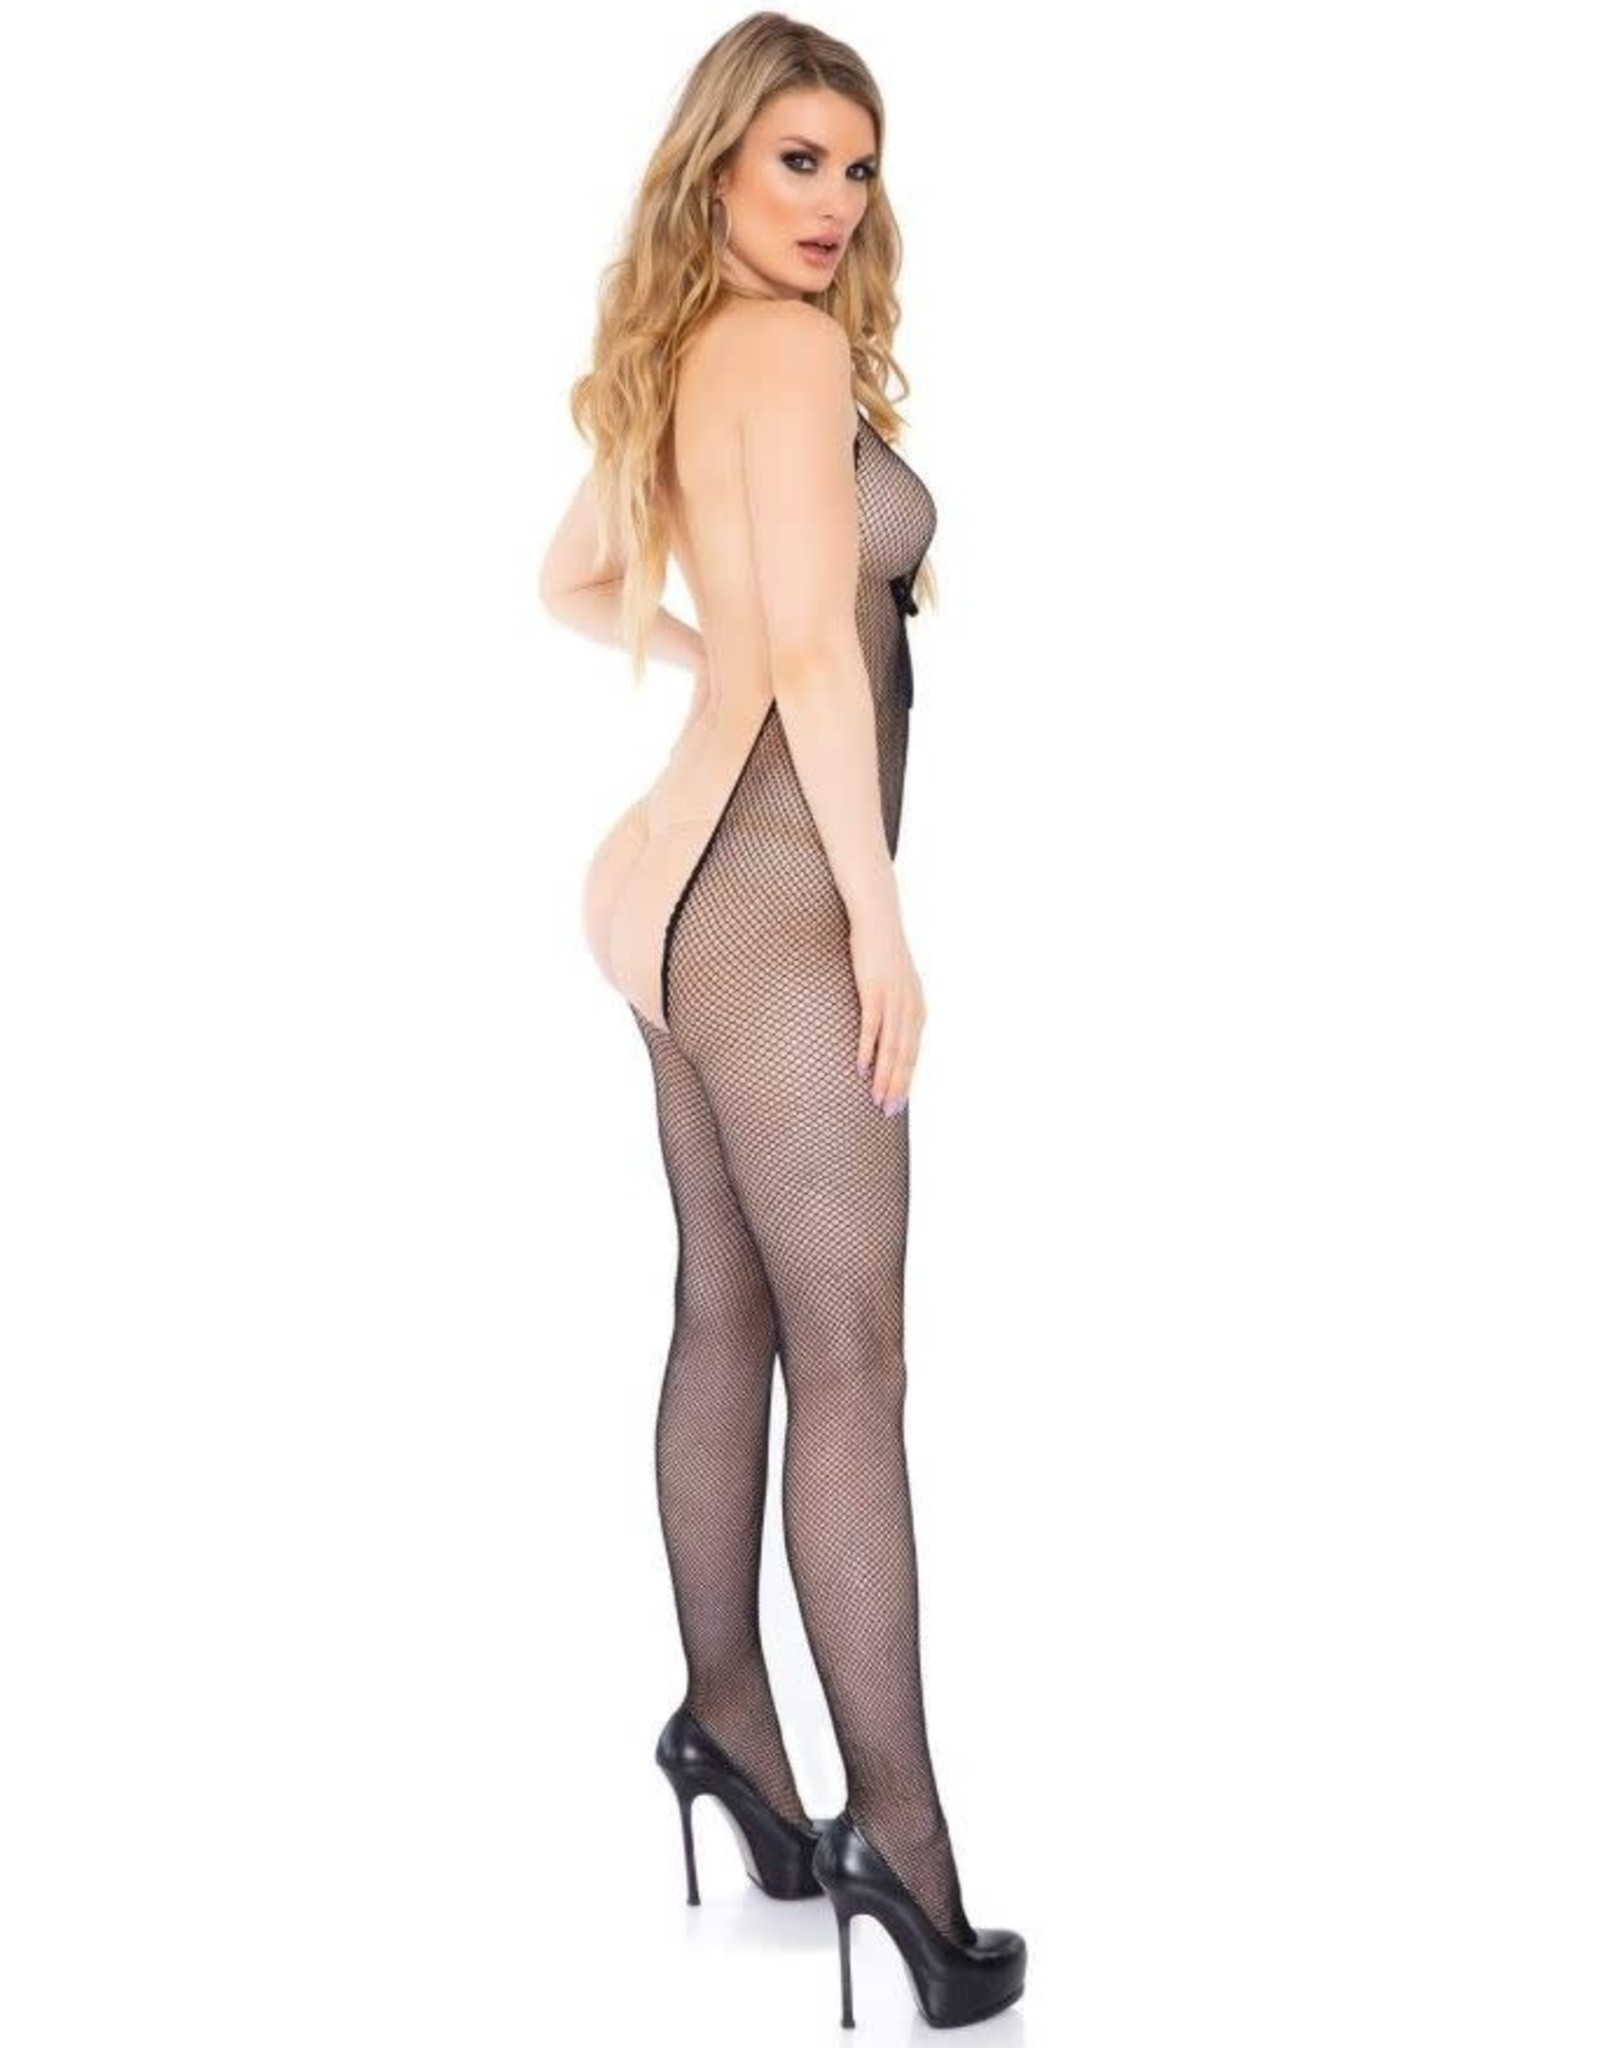 LEG AVENUE BARE BOTTOM BACKLESS FISHNET BODYSTOCKING